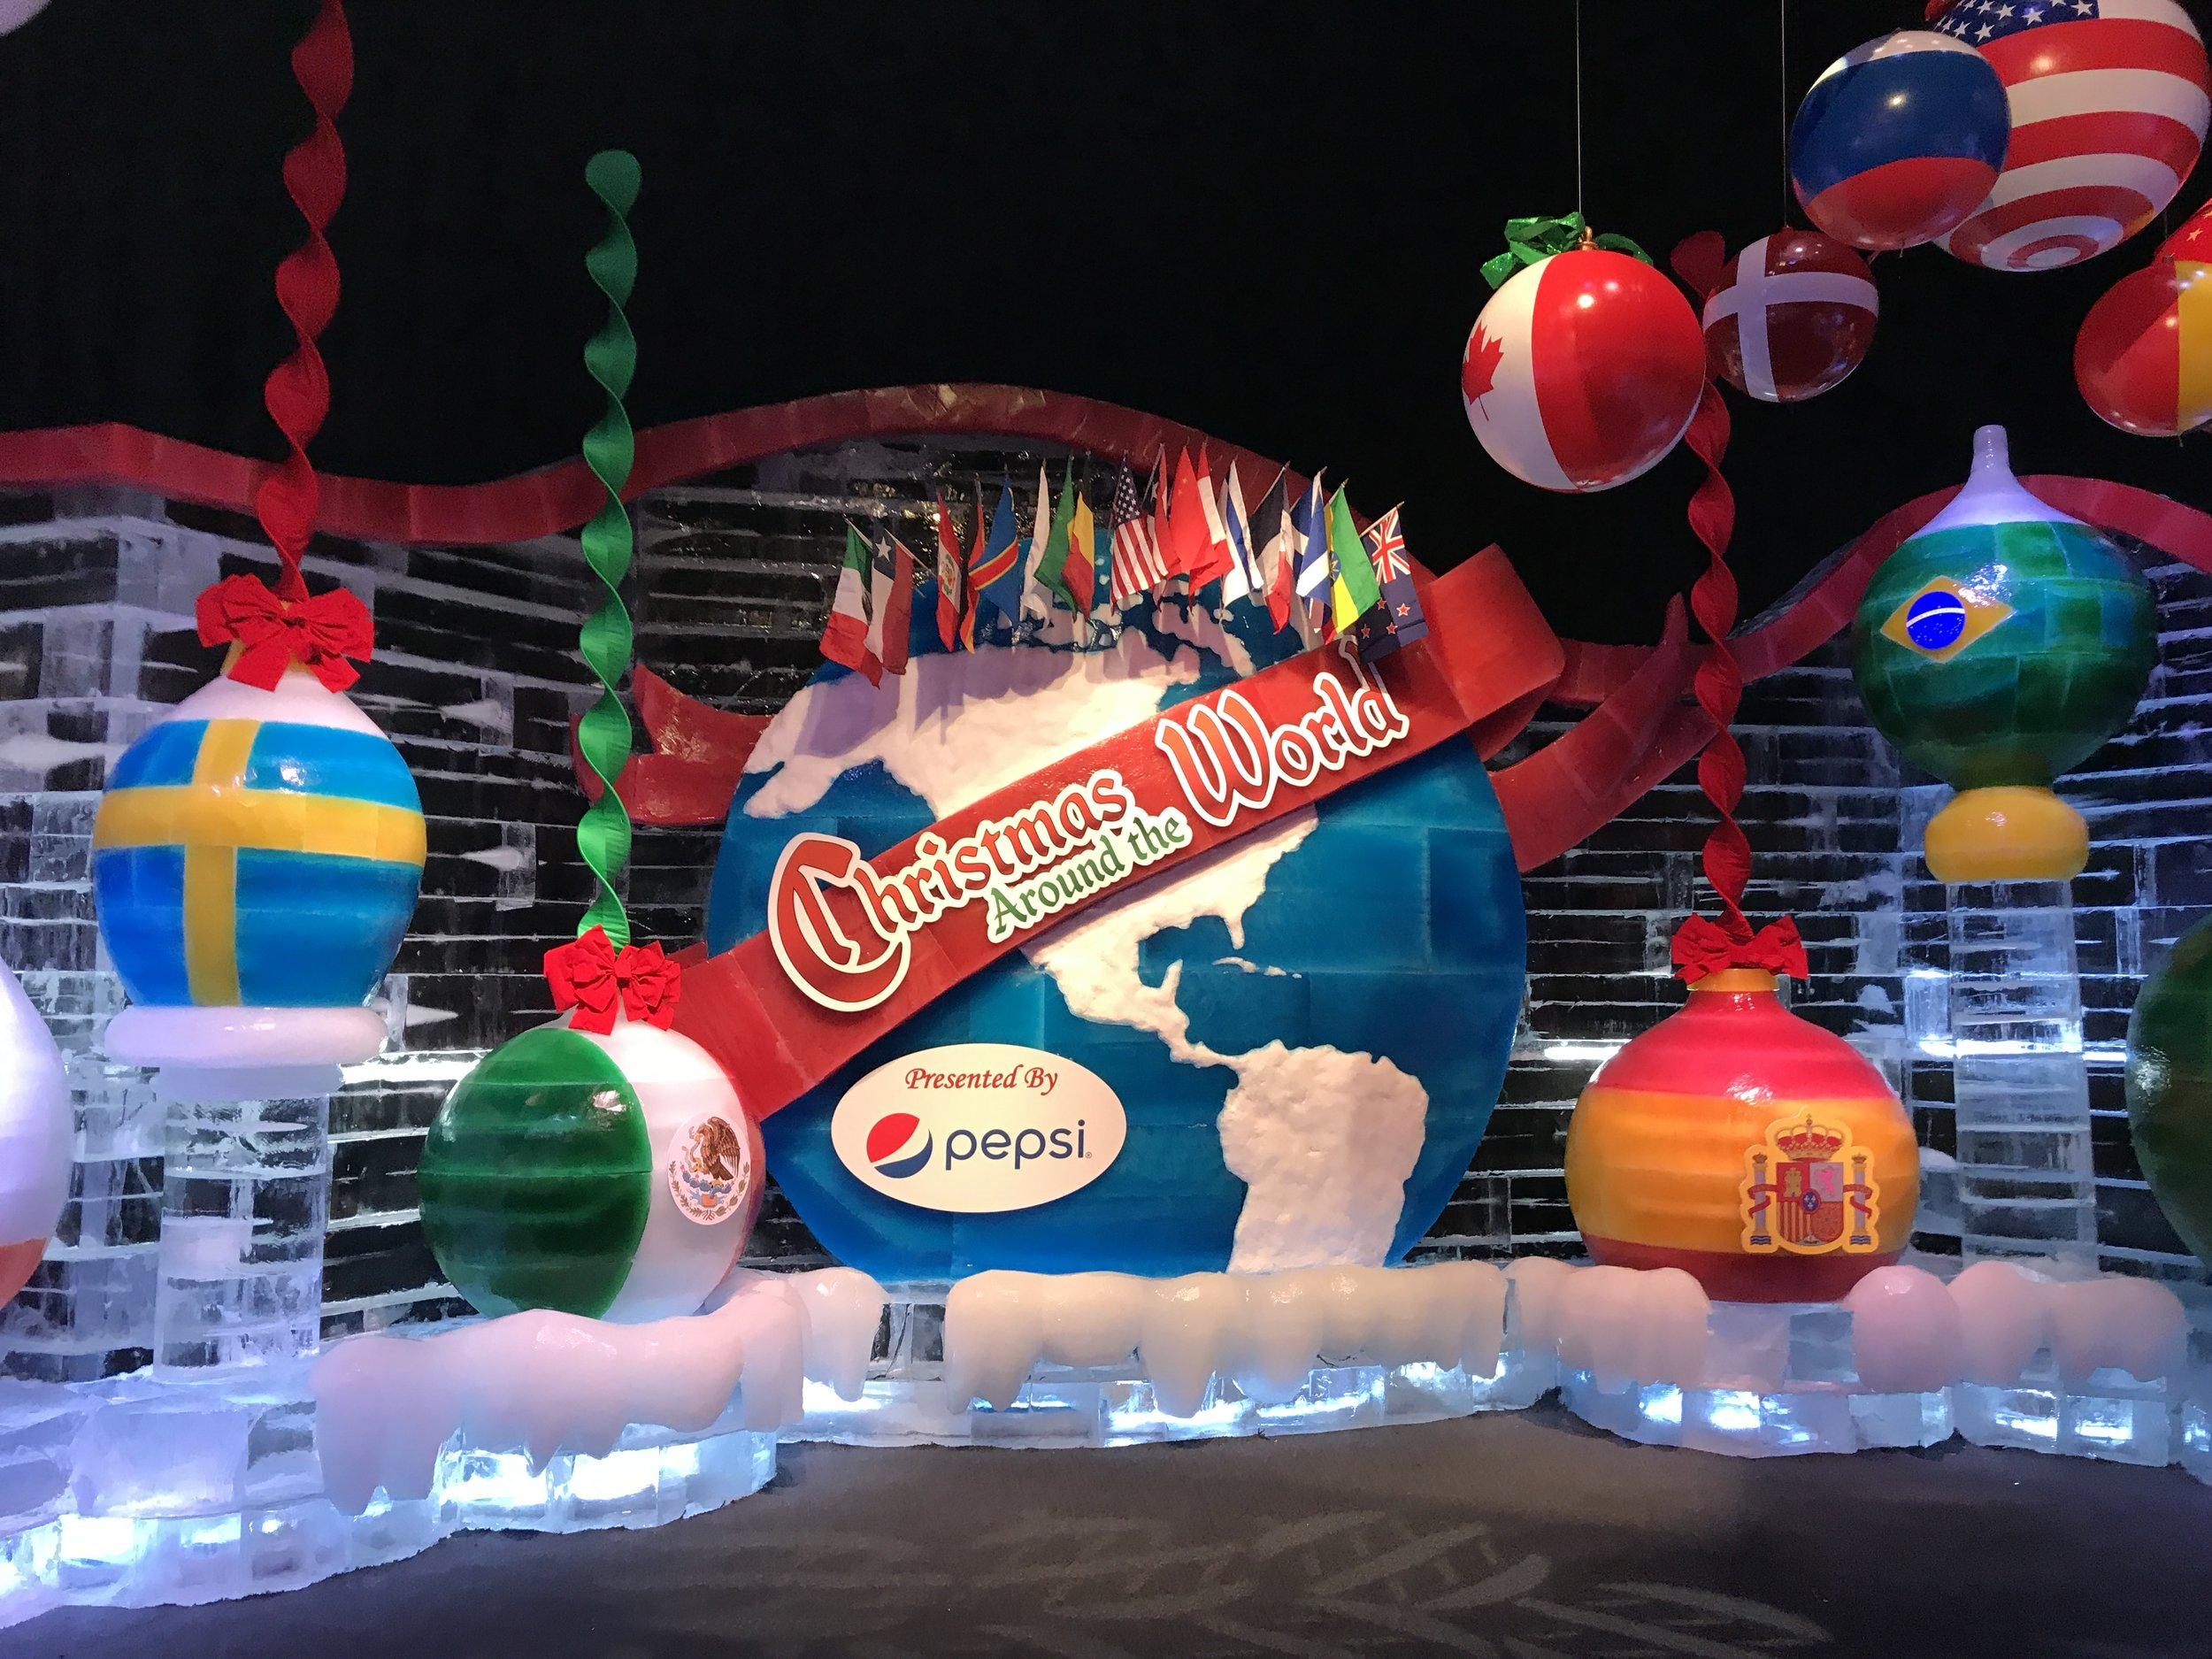 The beautiful Christmas Around the World entrance presented by Pepsi